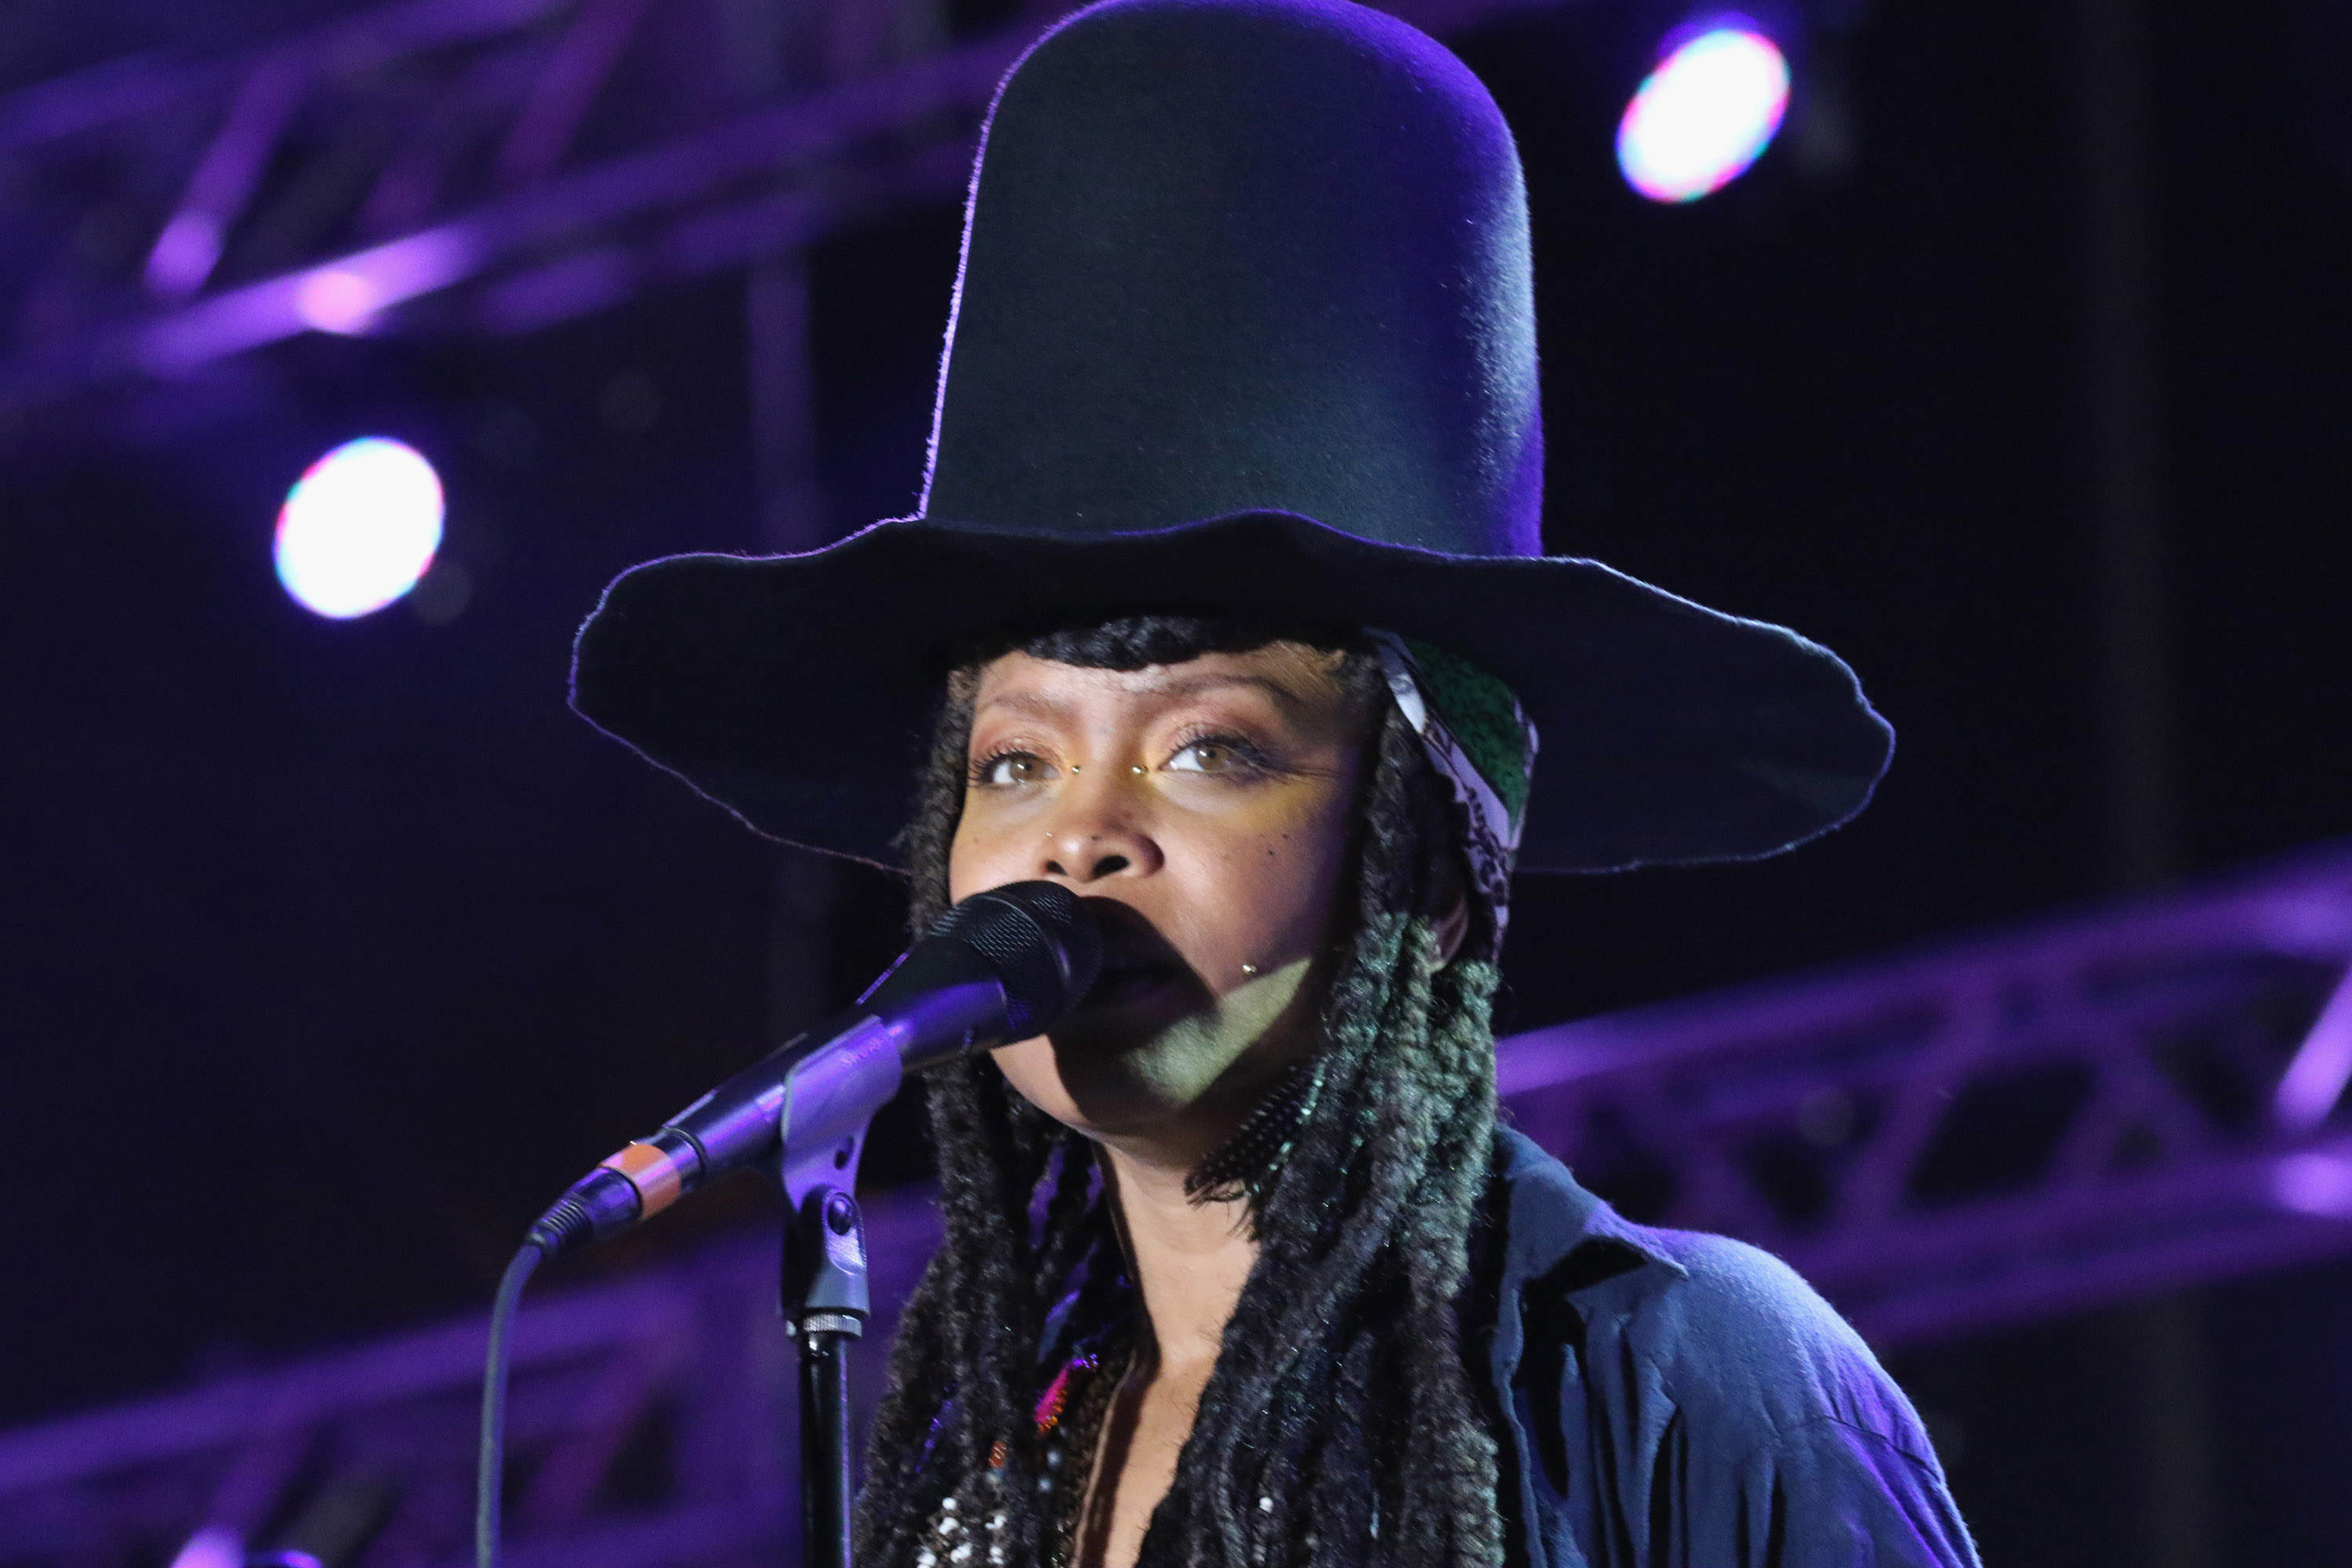 Erykah Badu Sparks Outrage With Victim Blaming Twitter Rant GettyImages 467314948